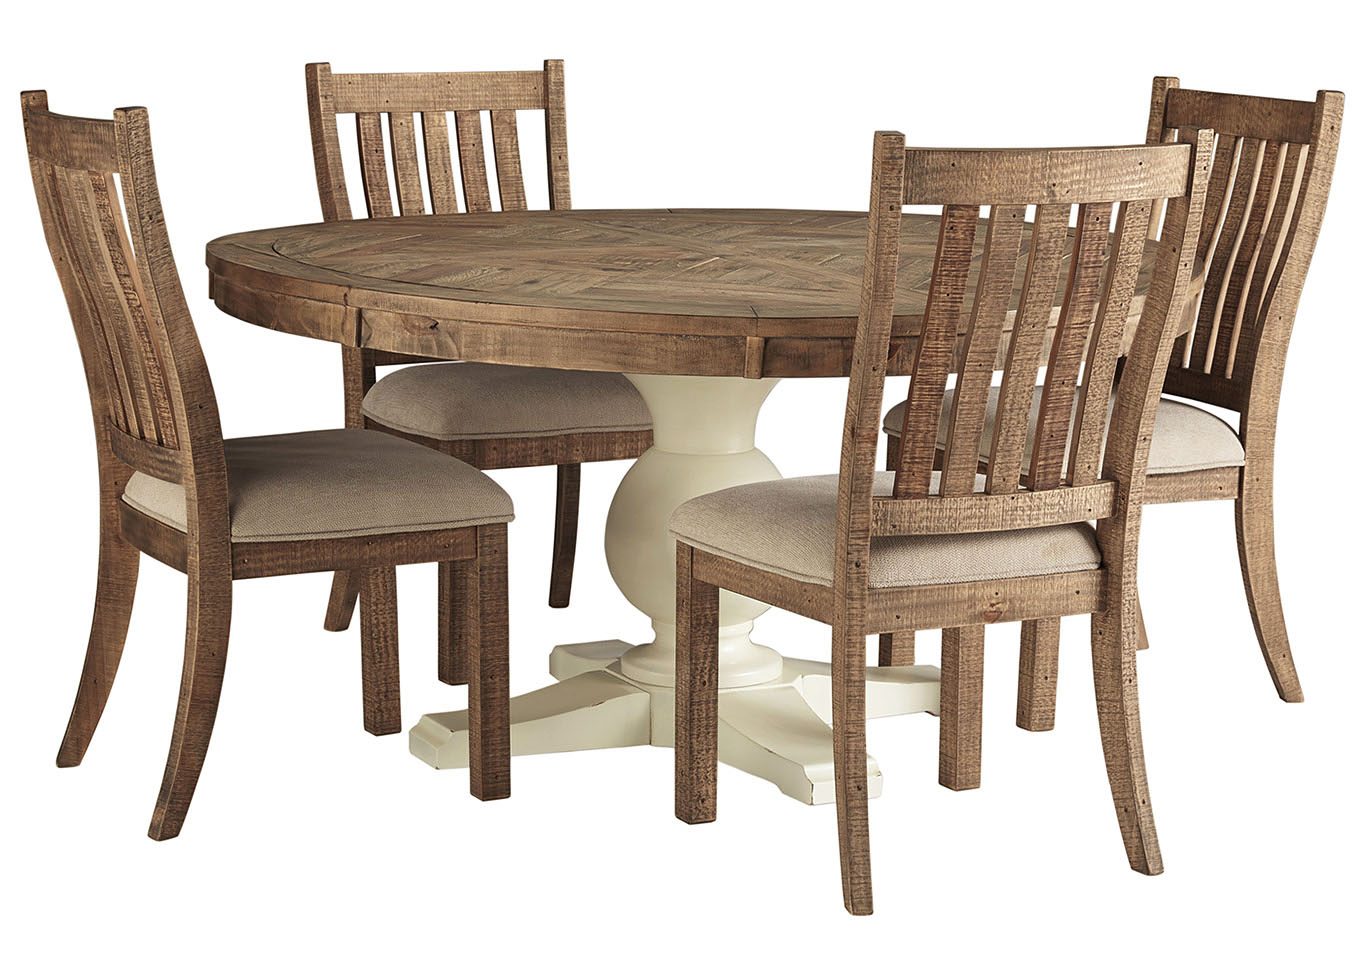 Grindleburg Round Dining Table w/4 Side Chairs